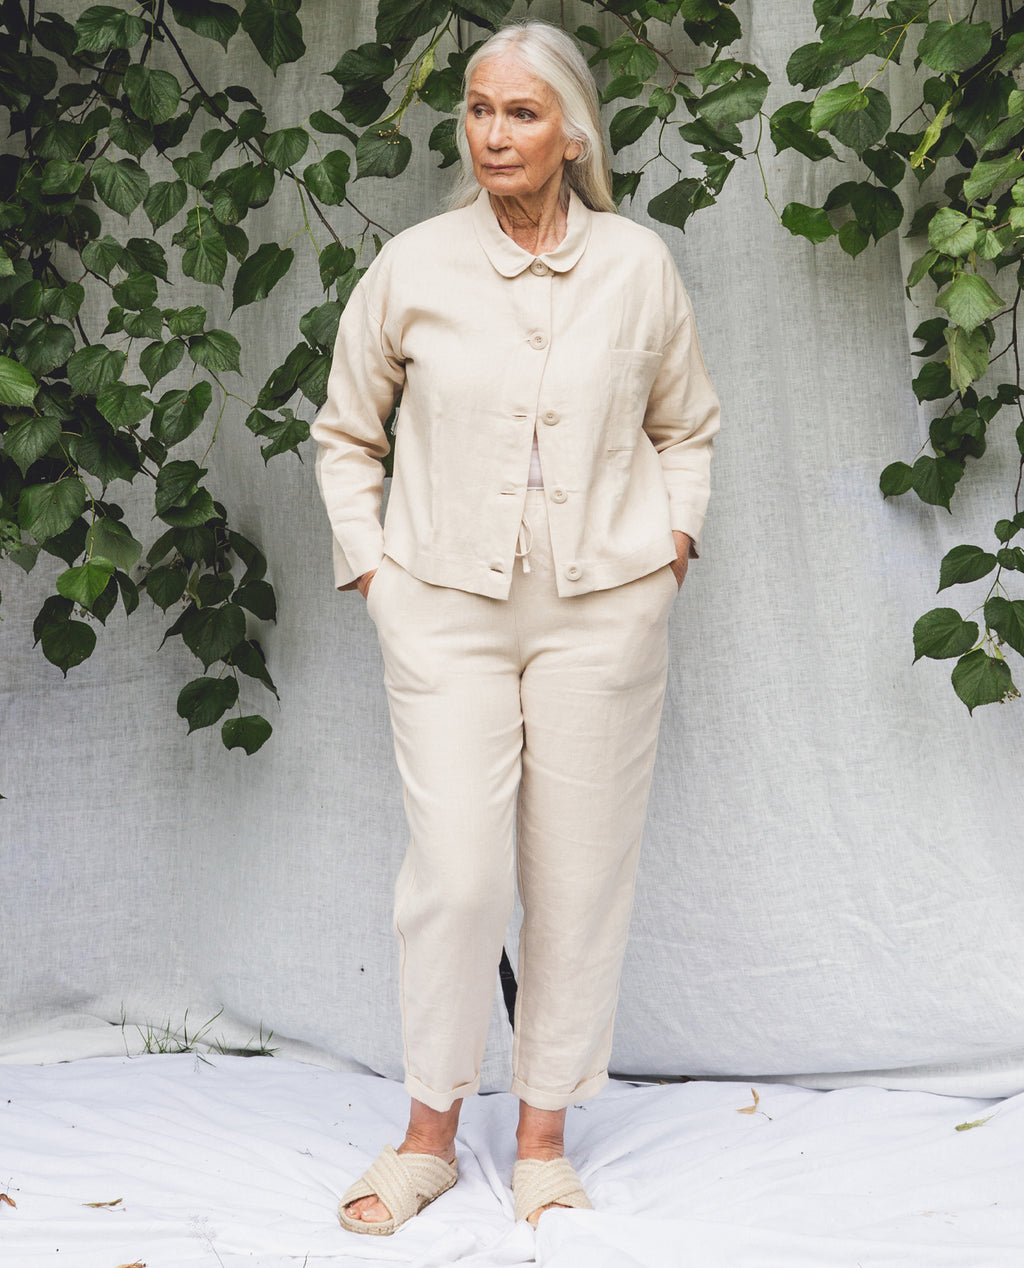 Kayley Linen Trousers In Cream.